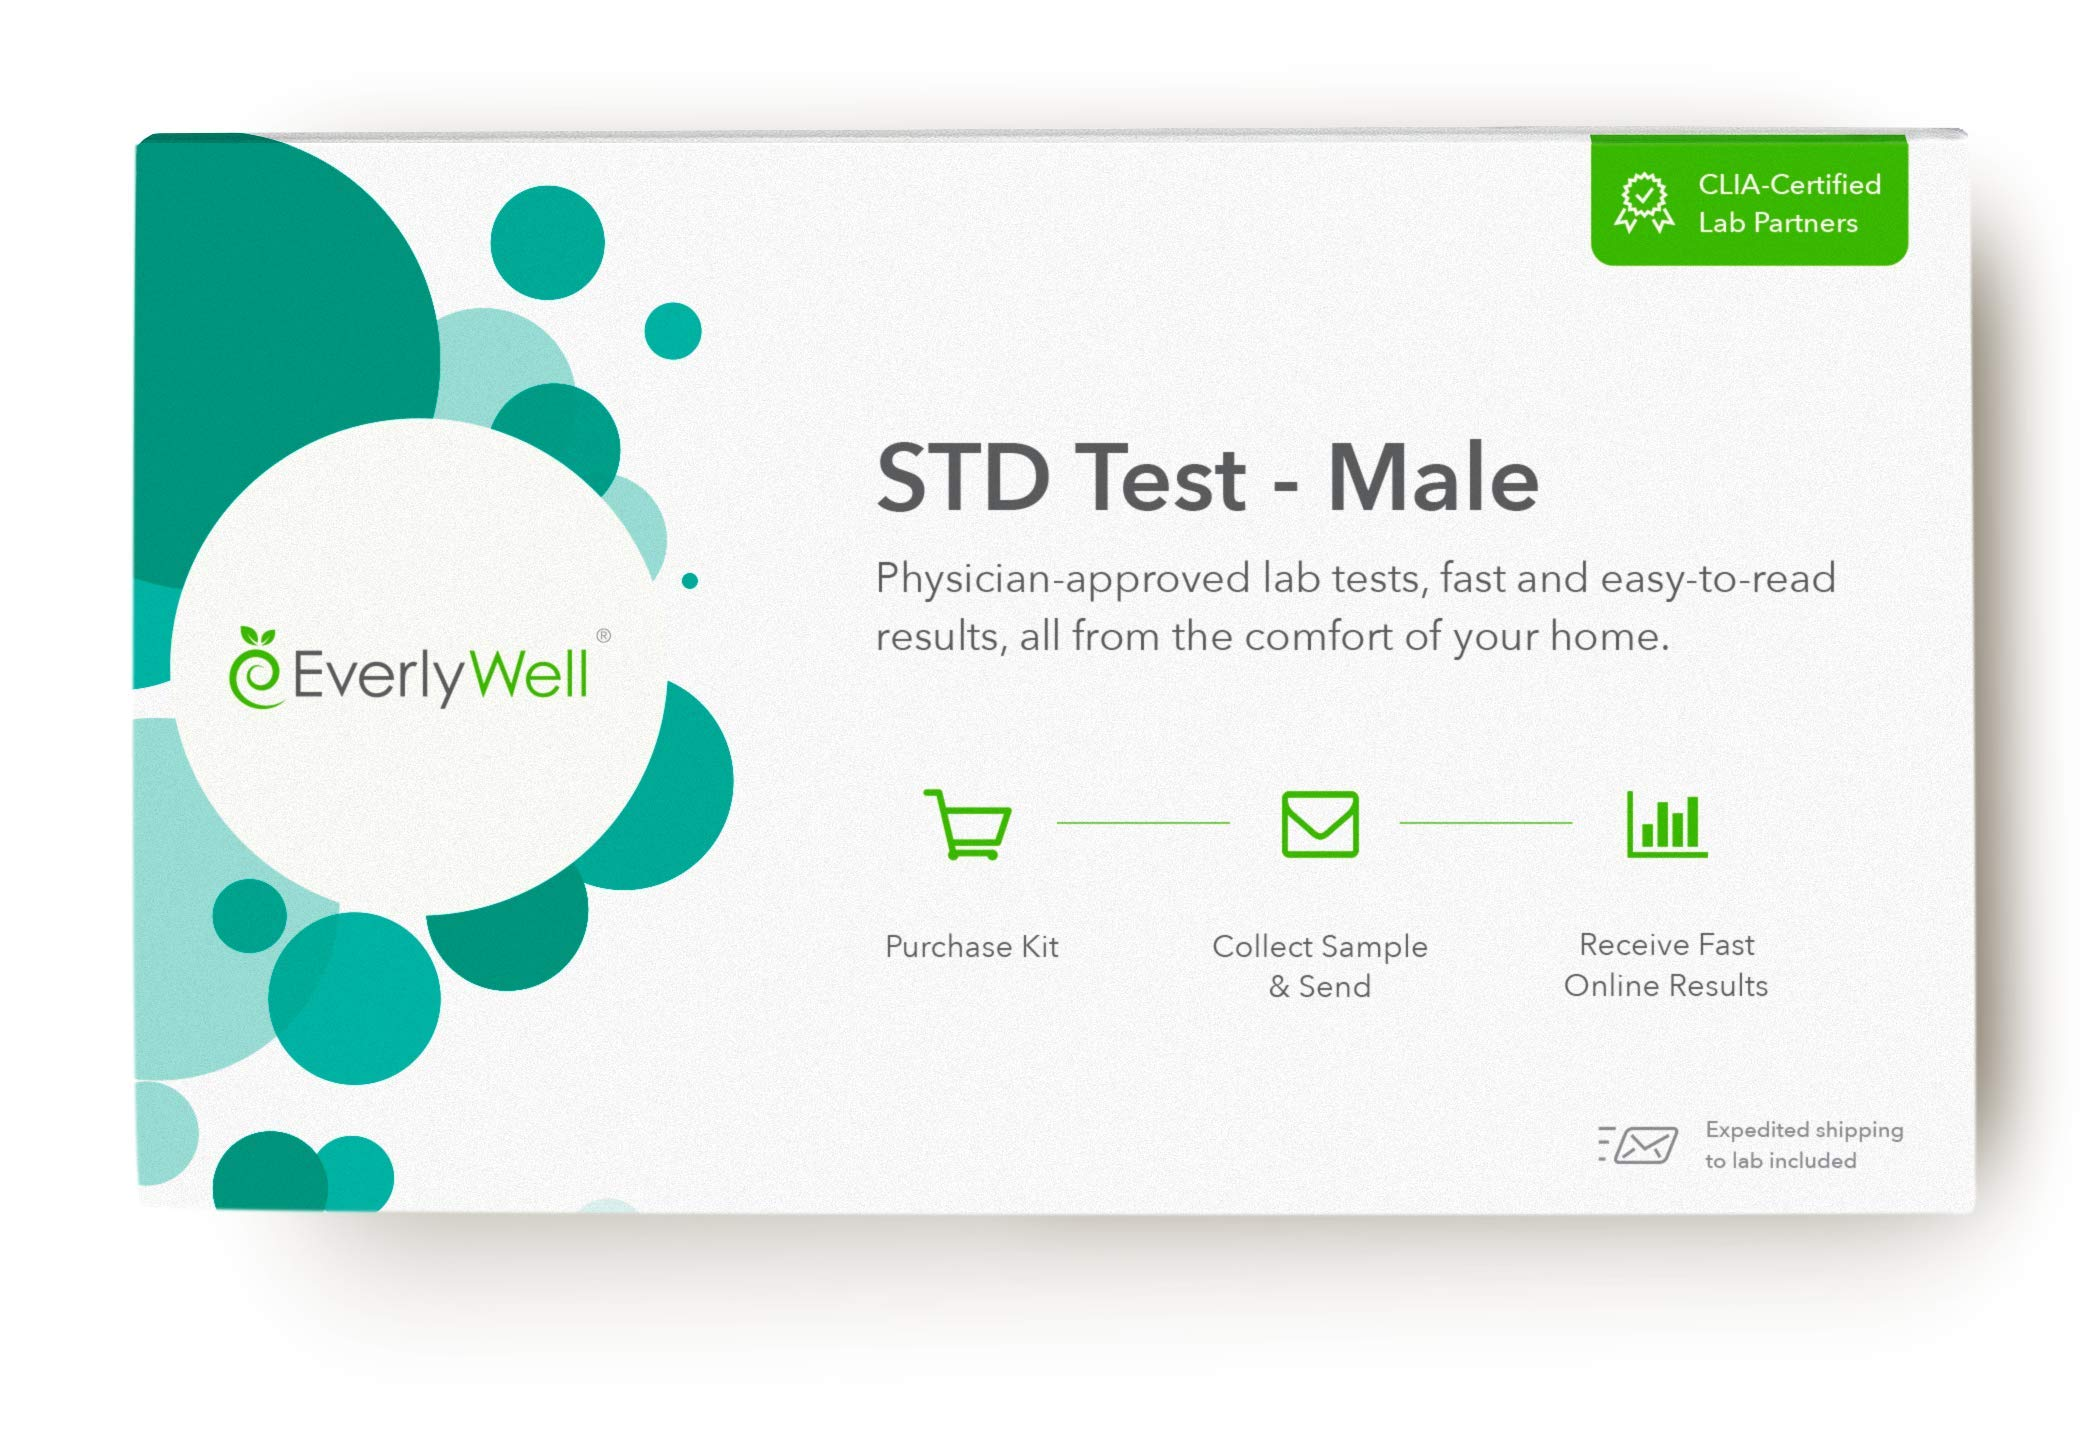 EverlyWell - Male at-Home STD Test - Discreetly Test for 7 Common STDs (Not Available in RI, NJ, NY, and MD) by Everly Well (Image #1)